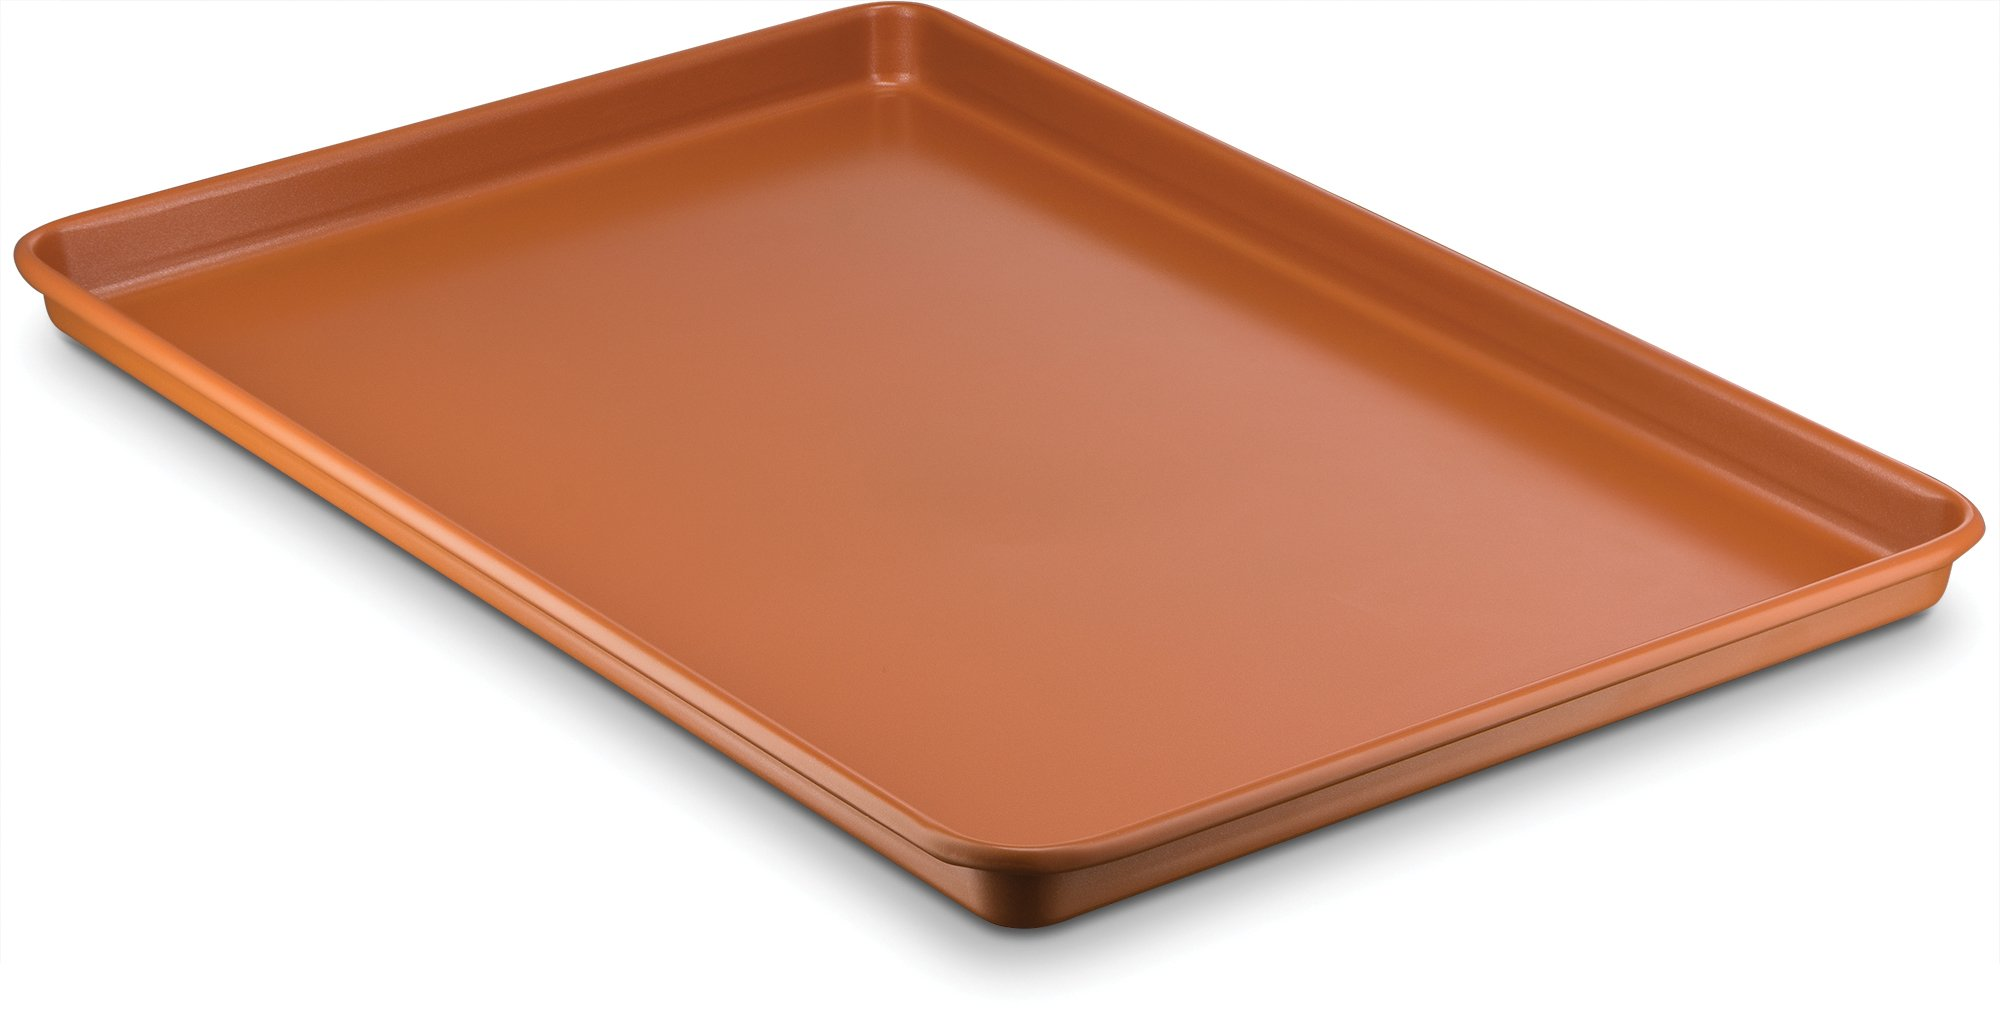 Ceramic Coated Cookie Sheet 17.3'' x 11.6'' - Premium Nonstick, Even Baking, Dishwasher and Oven Safe - PTFE/PFOA Free - Red Cookware and Bakeware by Bovado USA by BOVADO USA (Image #1)